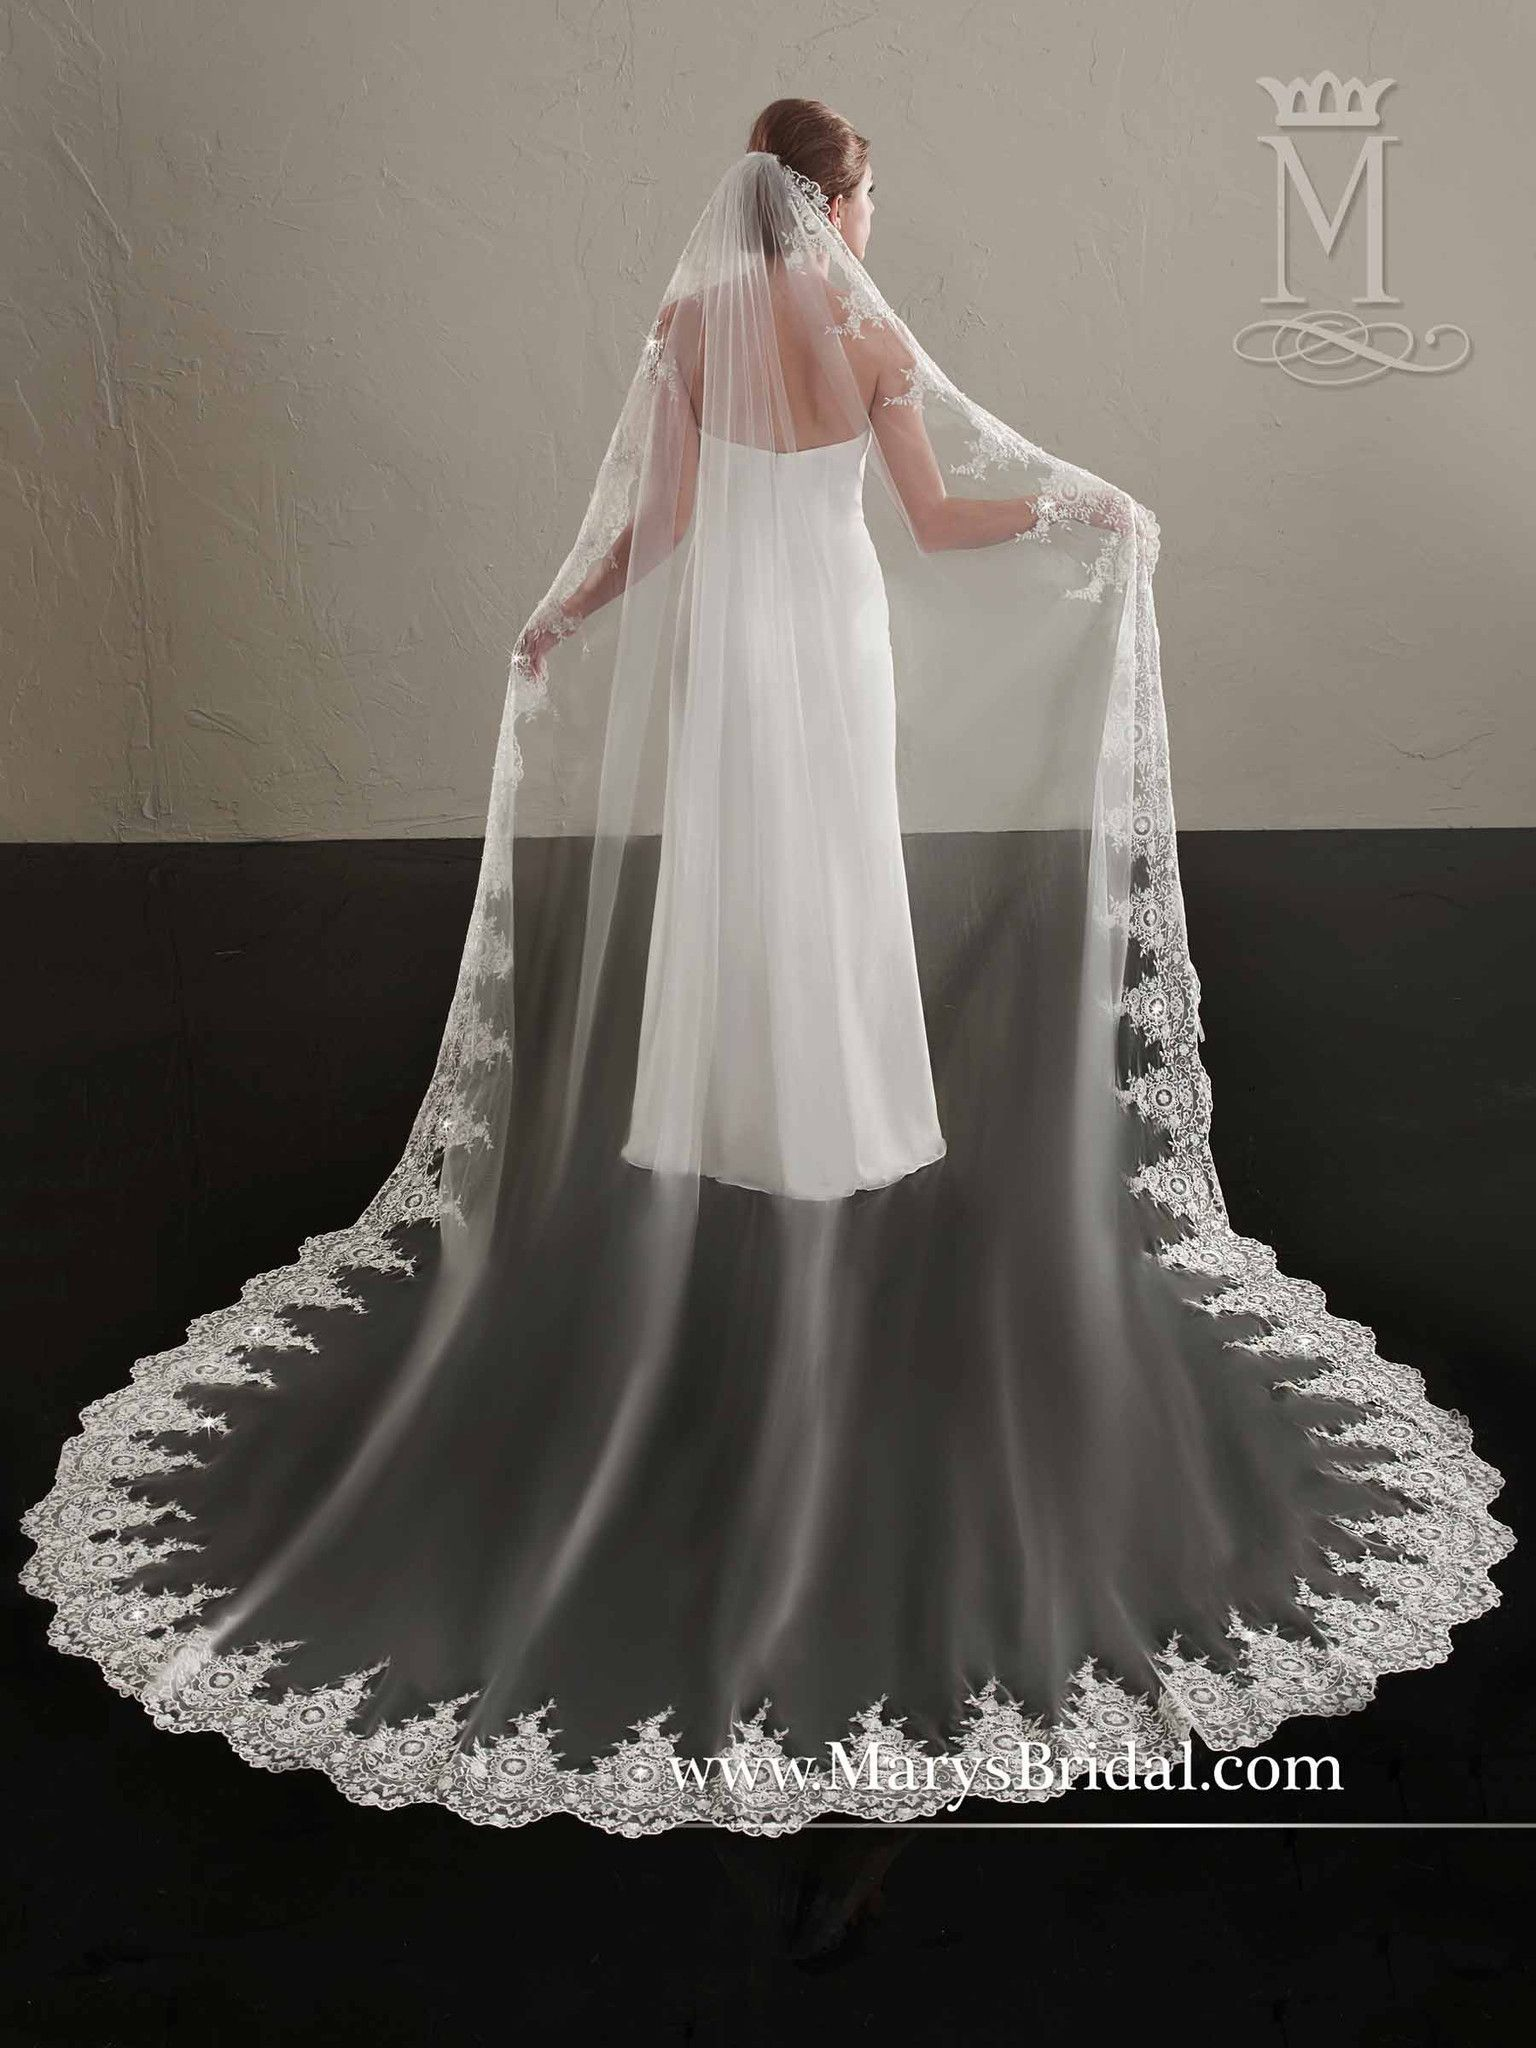 Romantic lace veil products pinterest lace veils and products